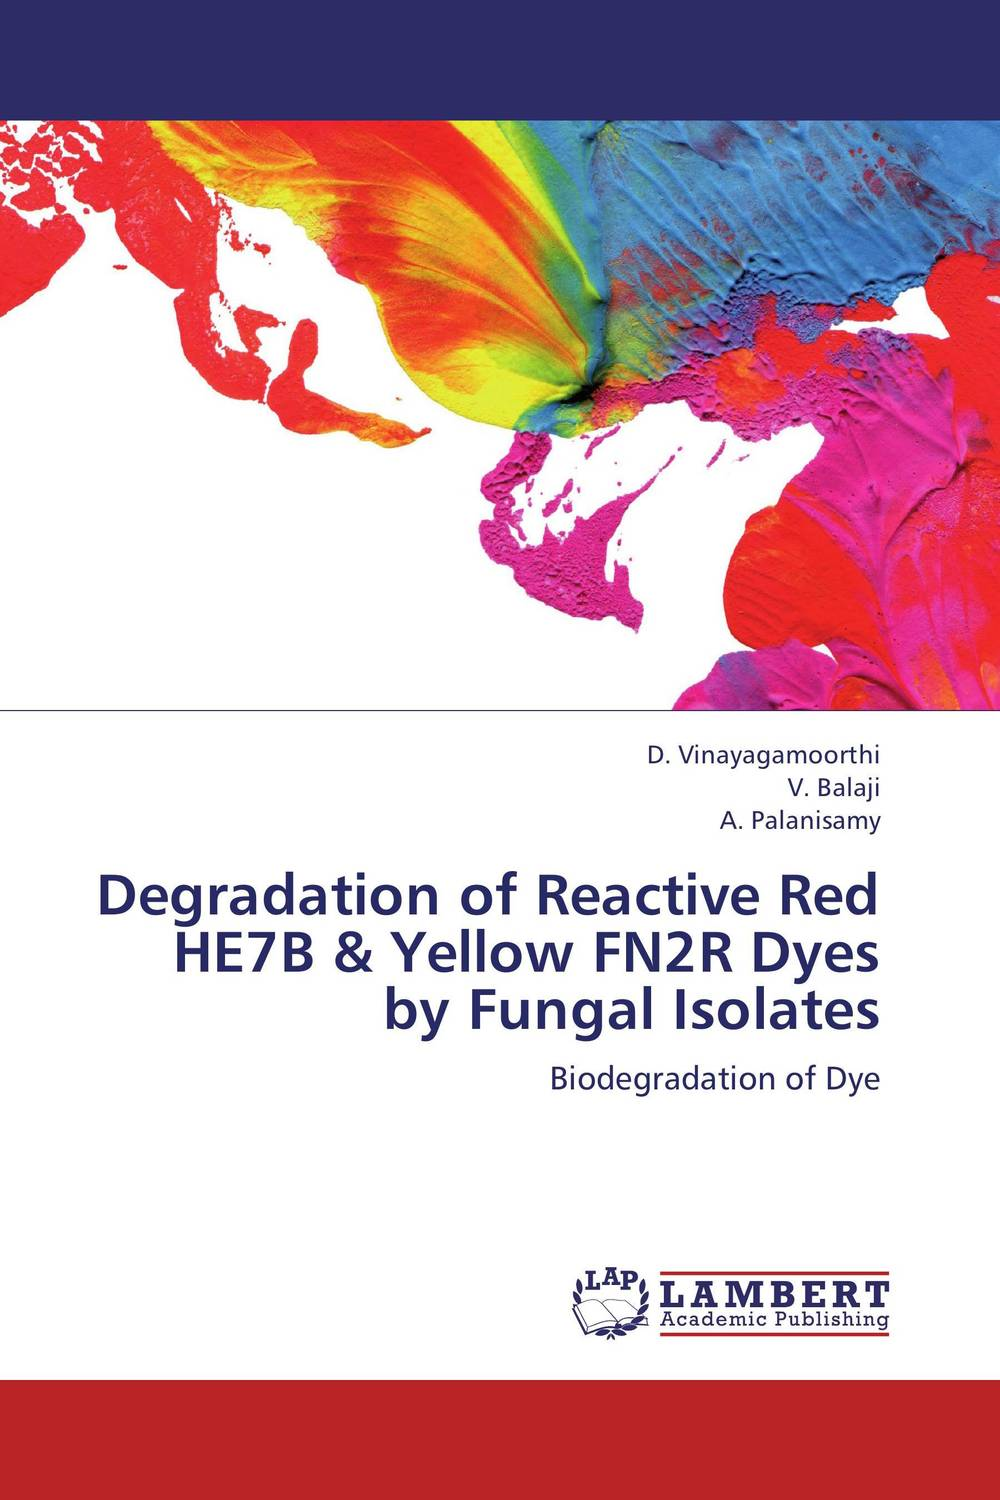 Degradation of Reactive Red HE7B & Yellow FN2R Dyes by Fungal Isolates benzo a pyrene bap degradation by bacillus subtilis bmt4i mtcc 9447